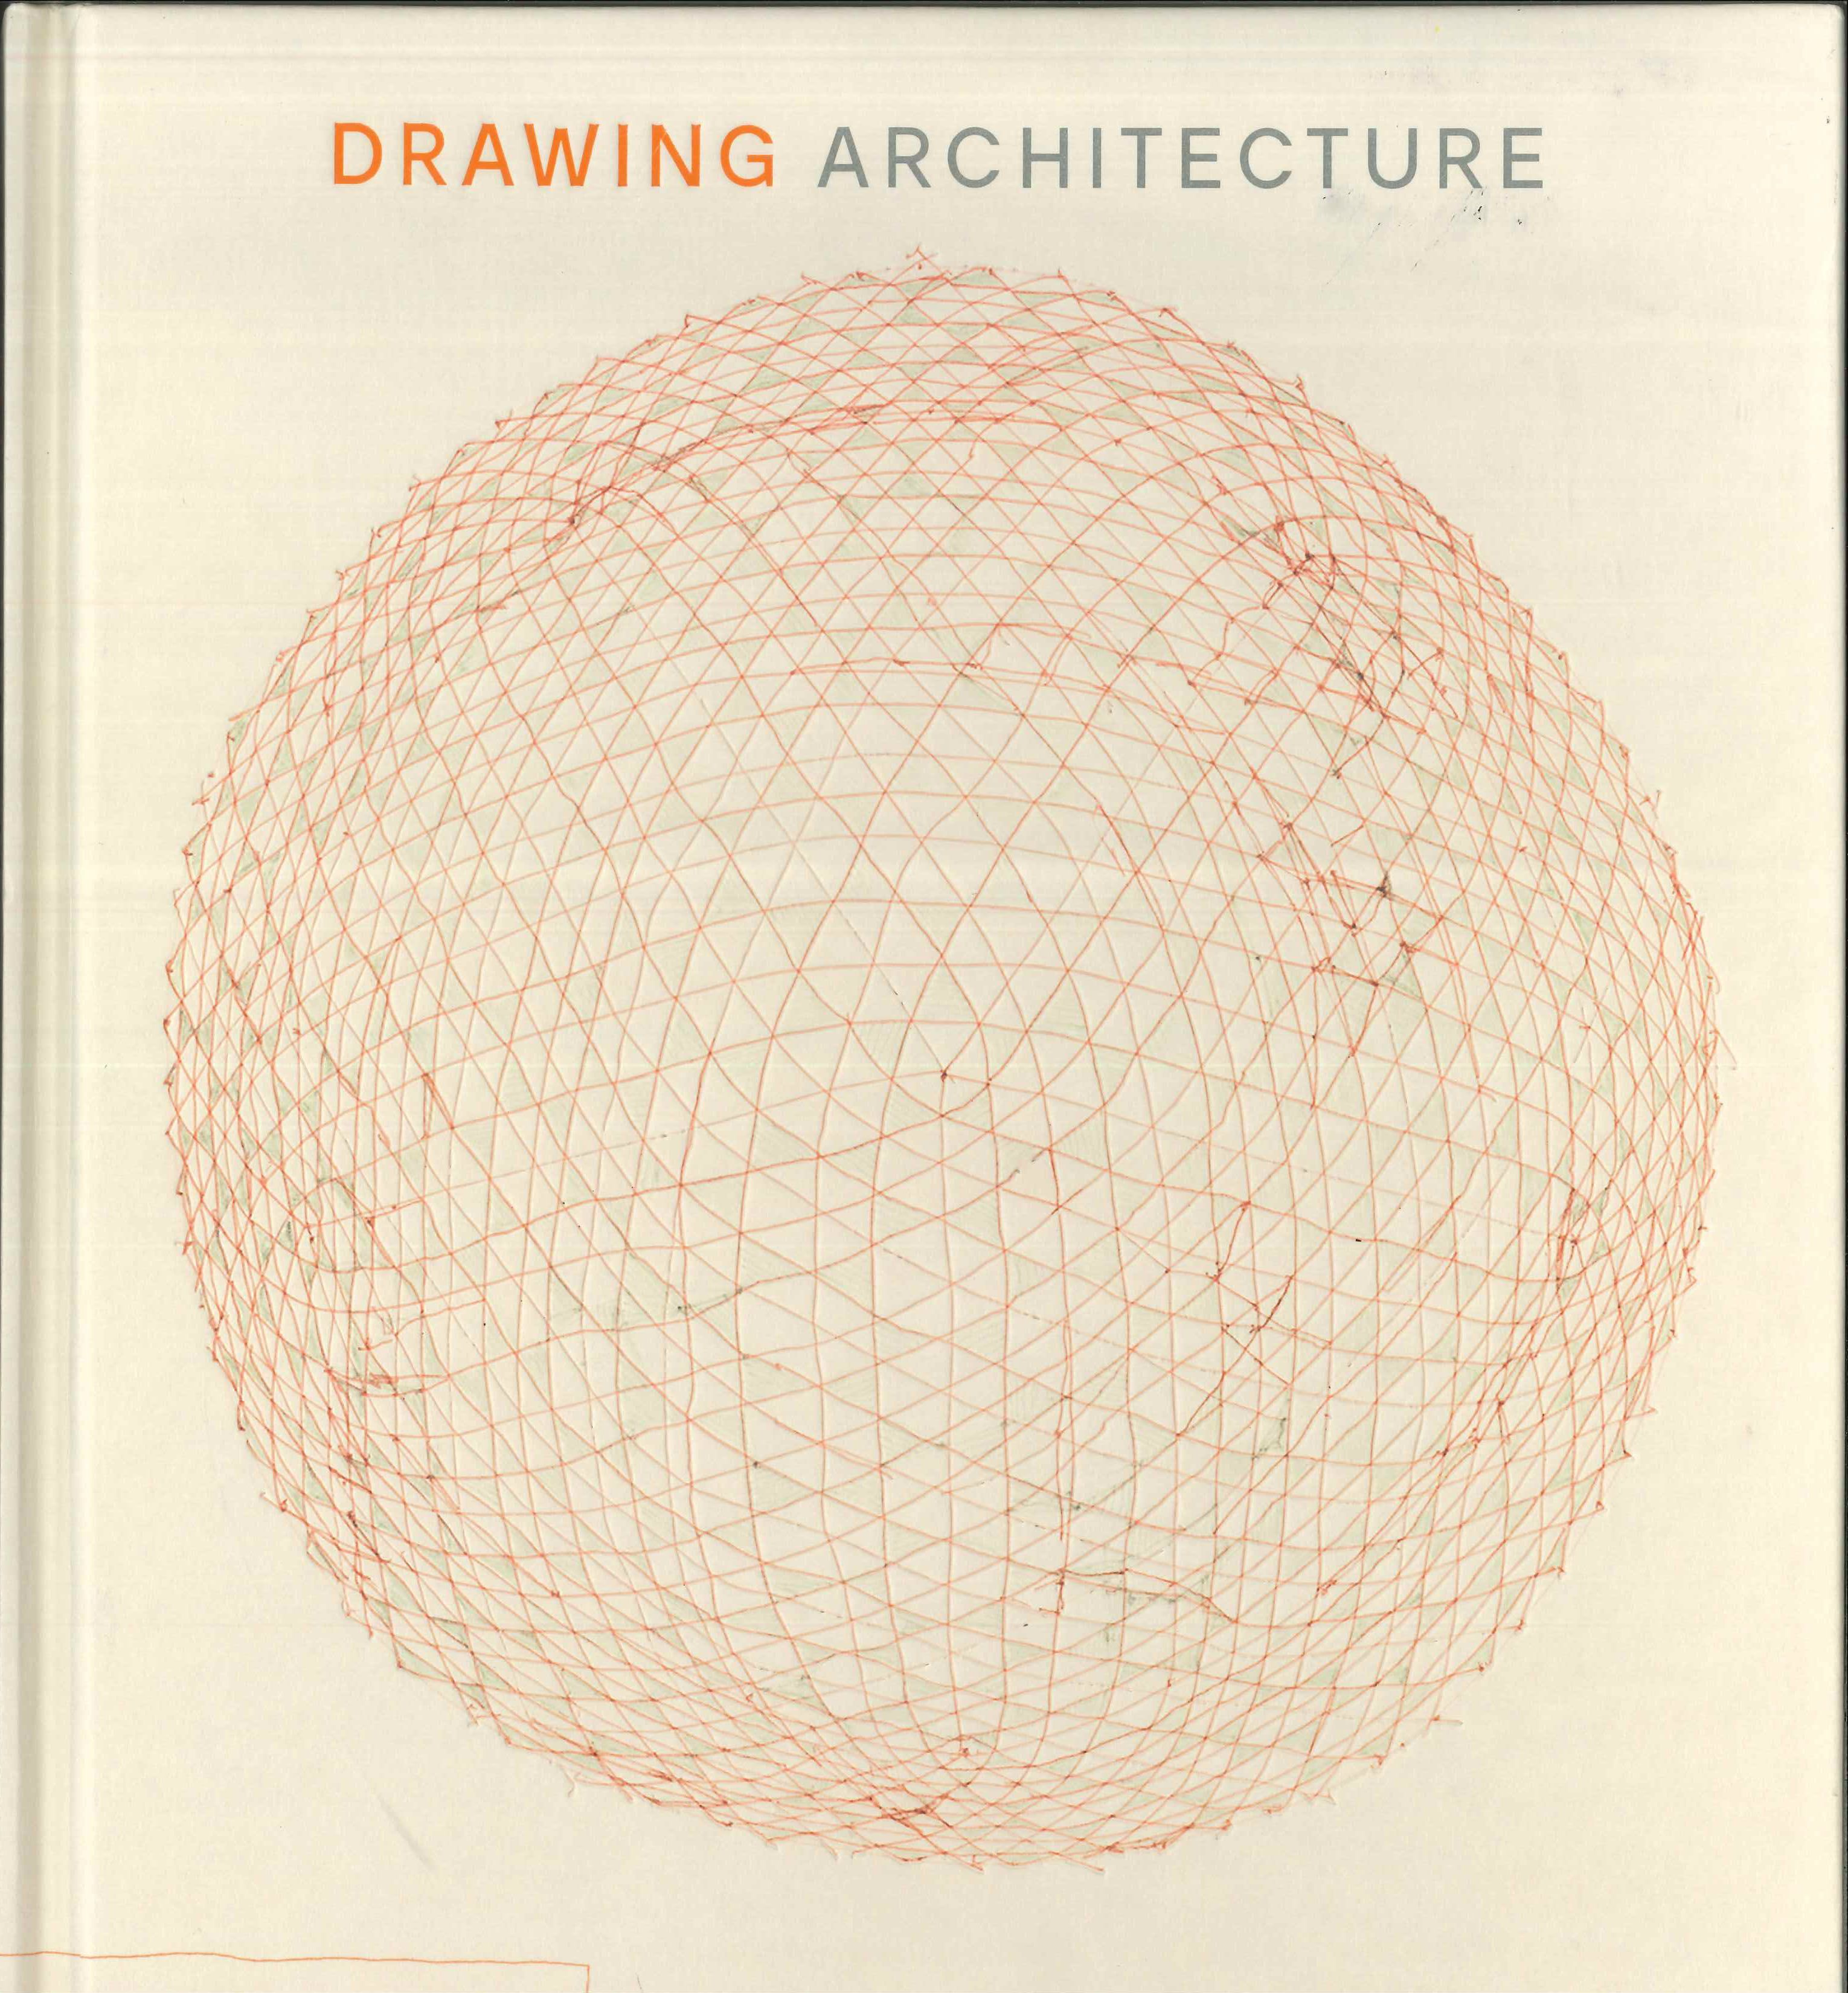 Pin By Ball State University Architec On New Books For